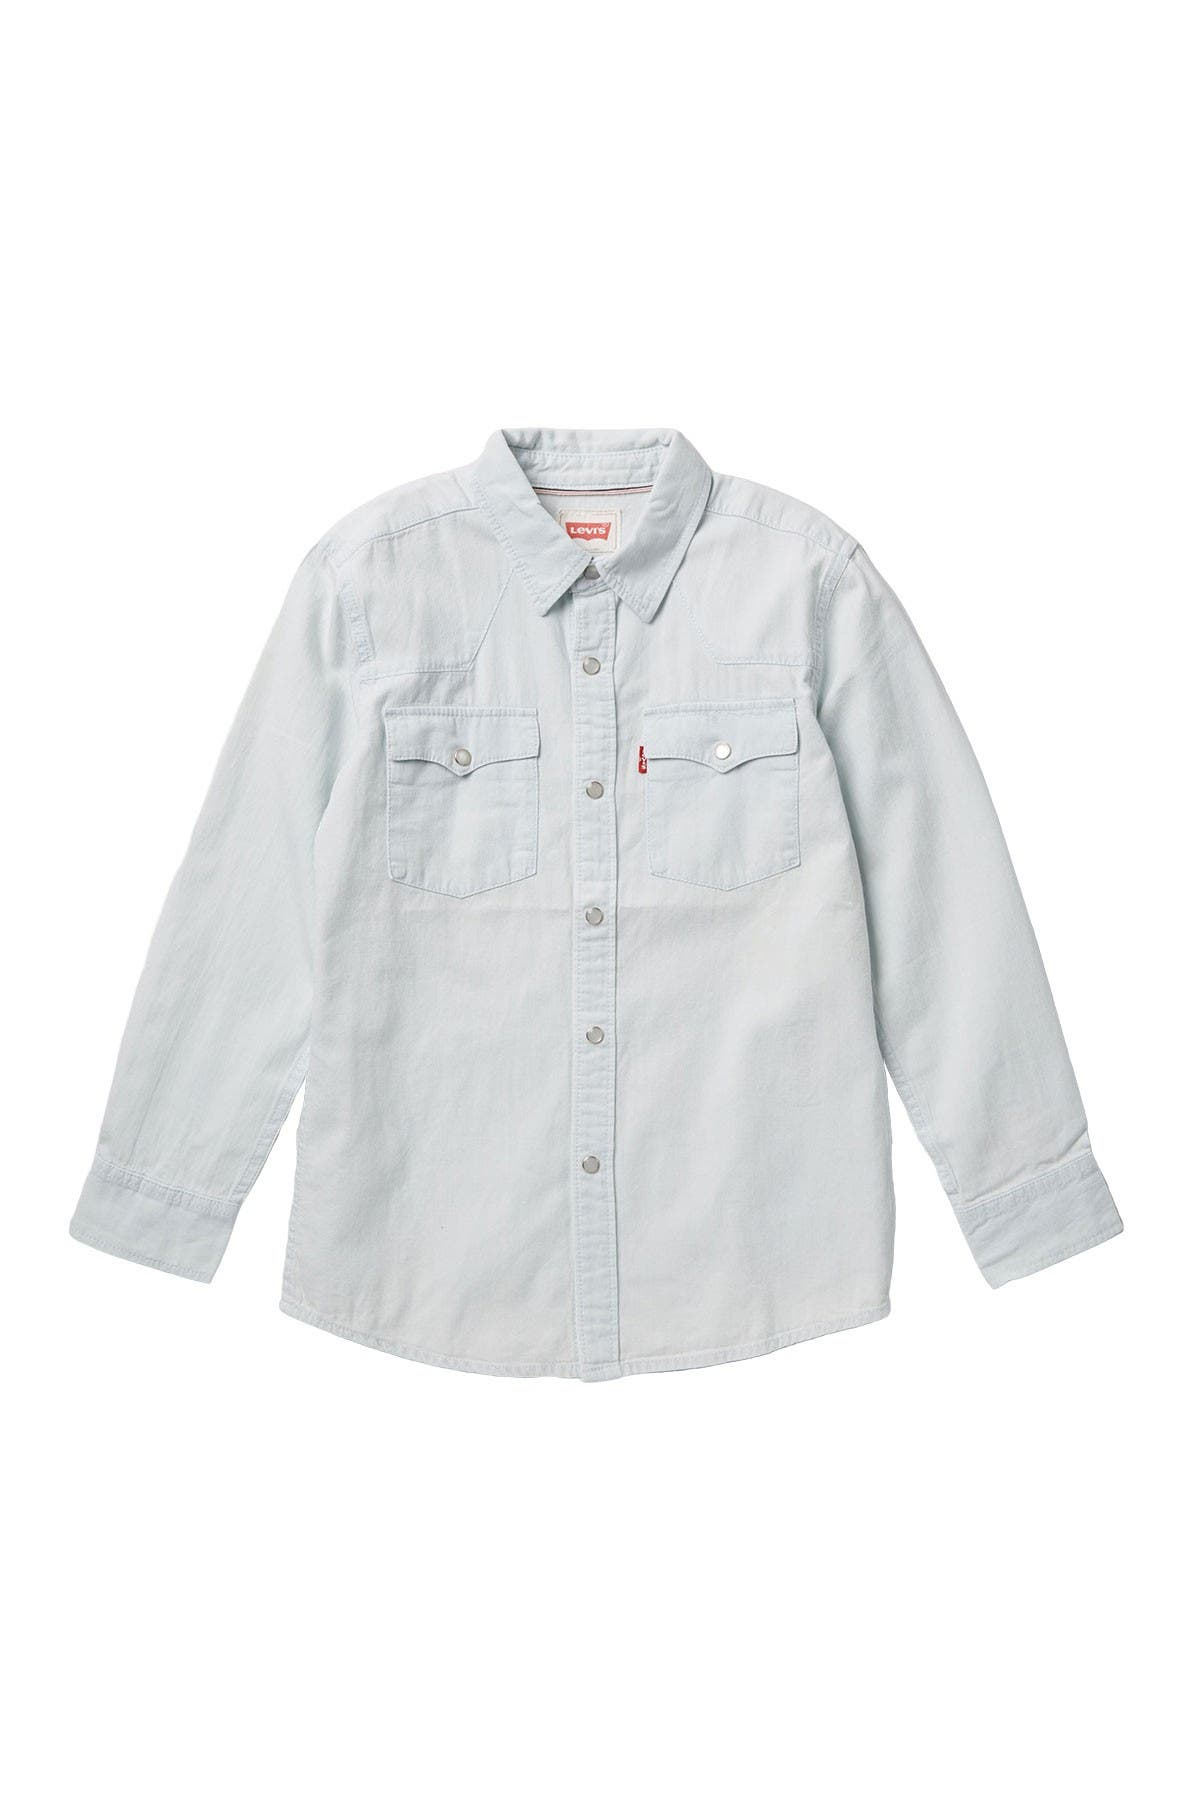 Image of Levi's Barstow Western Shirt